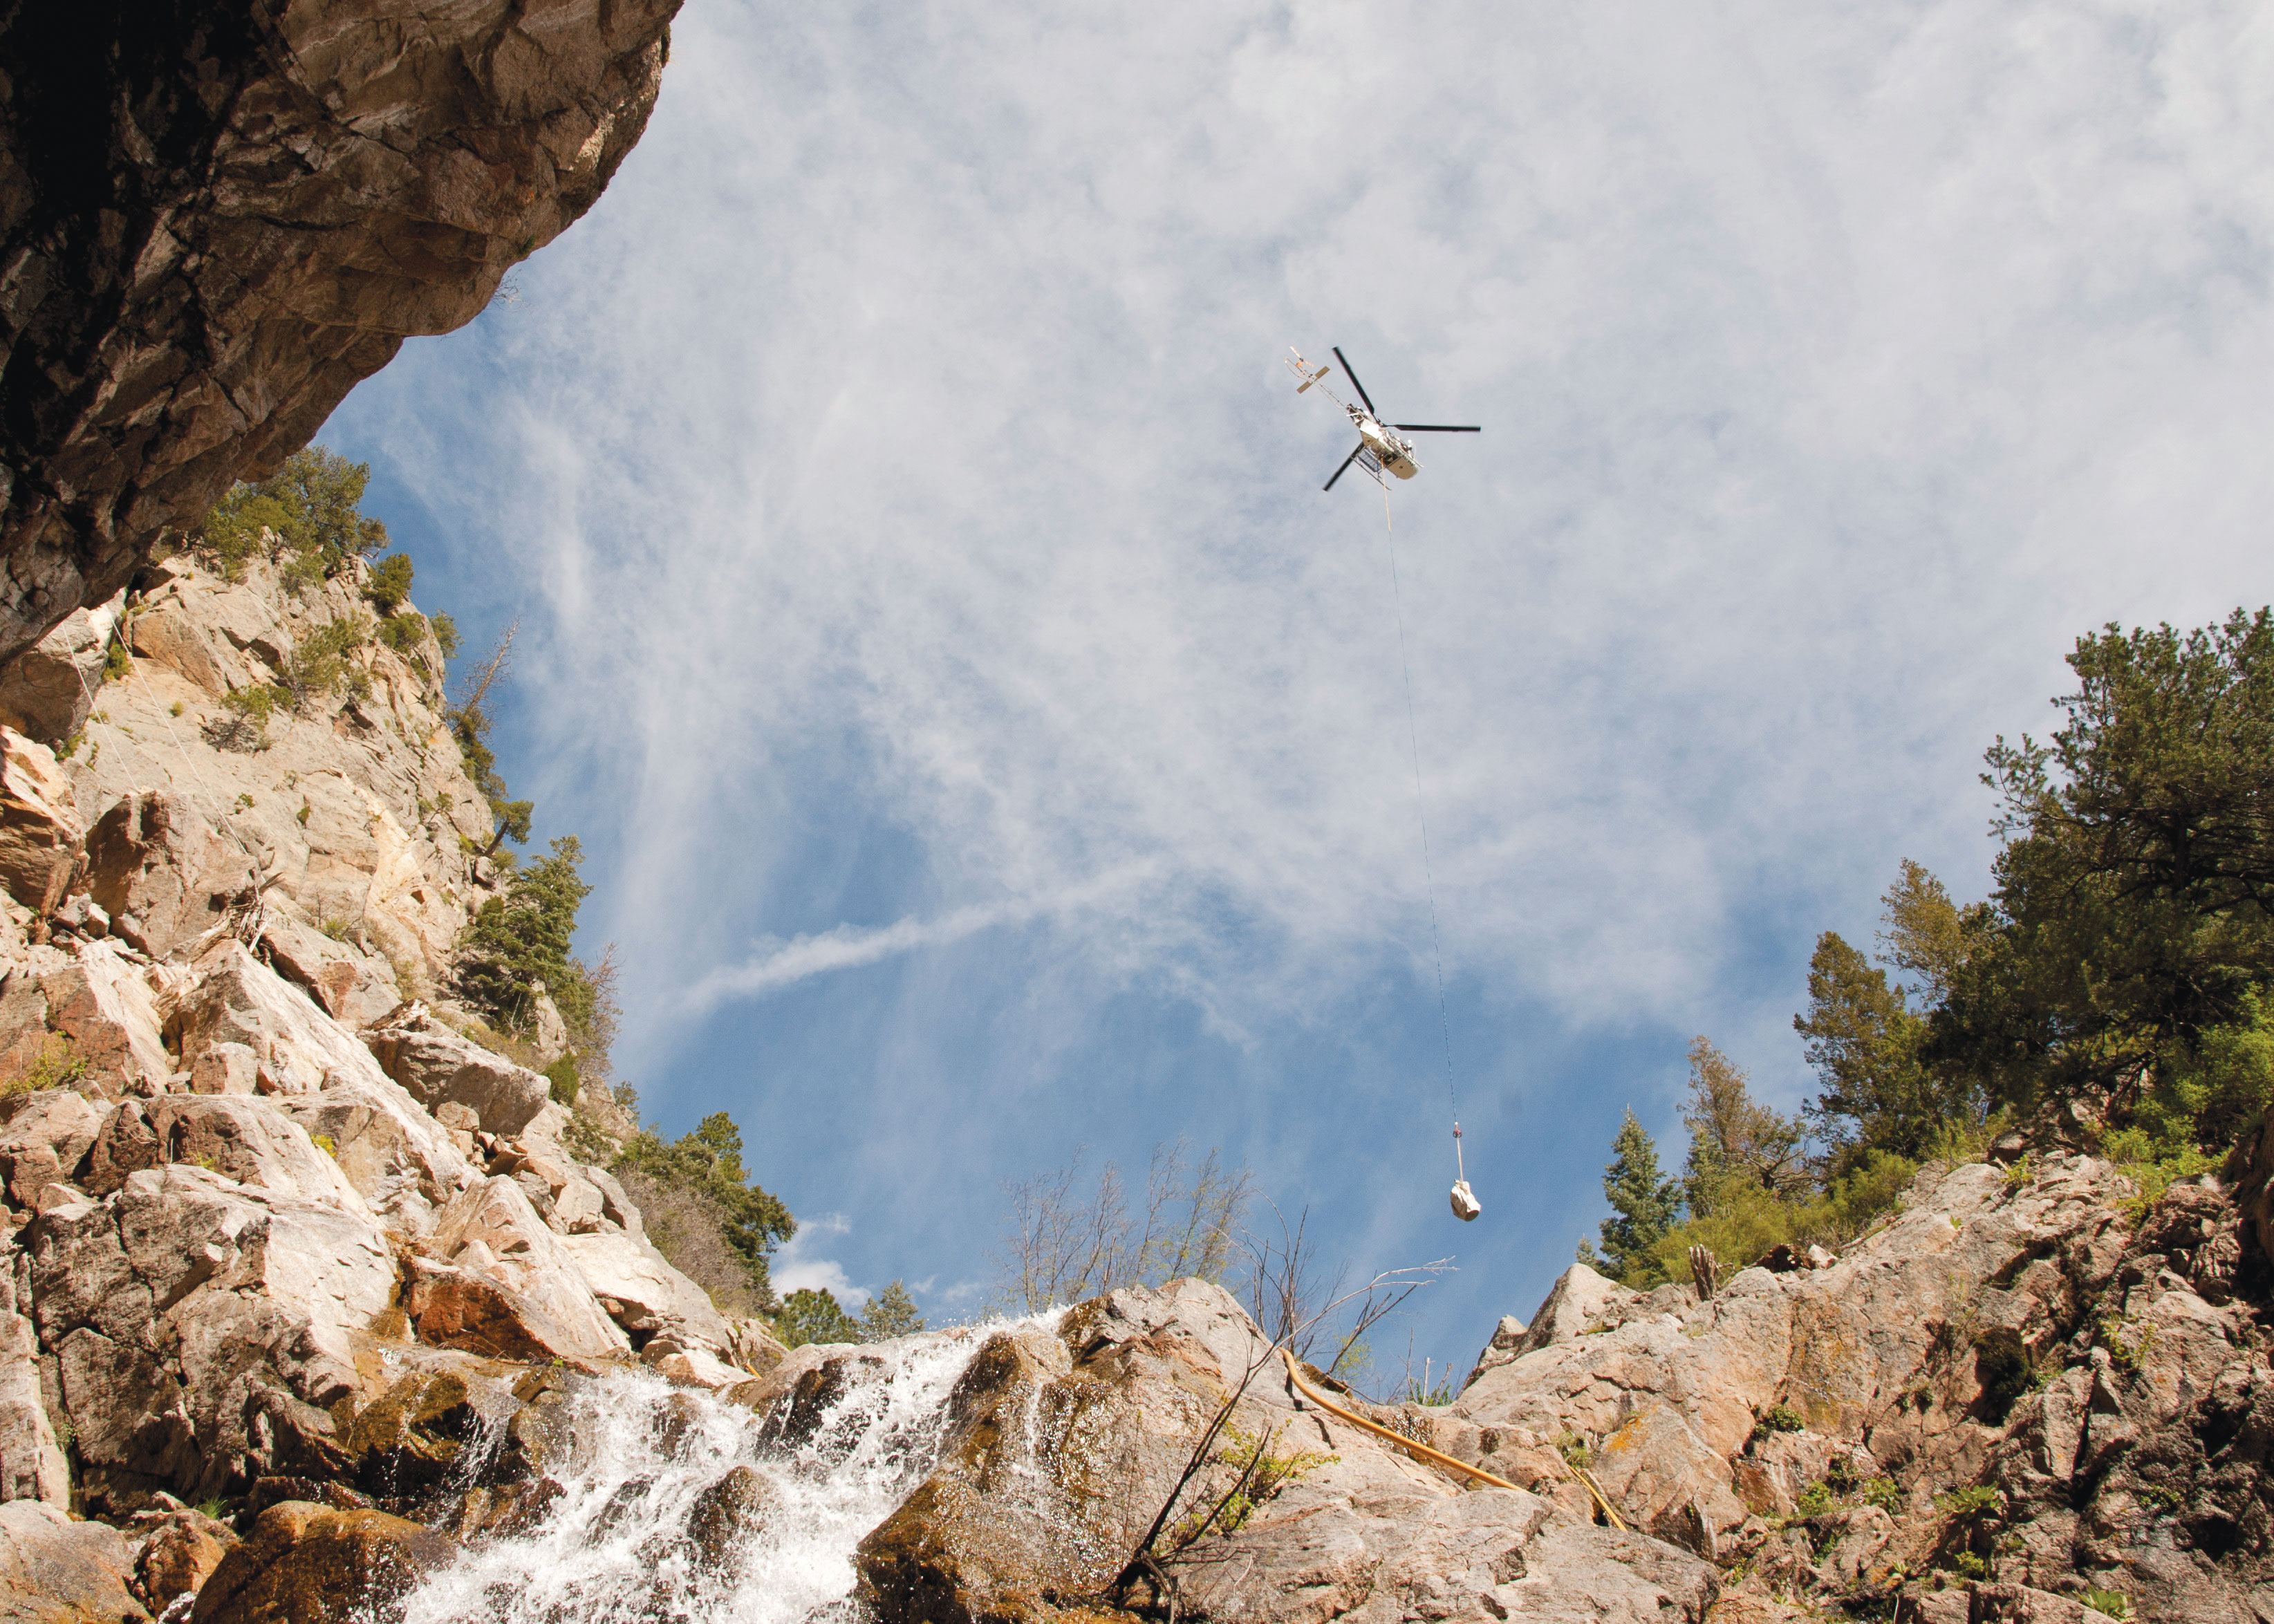 "(U.S. Air Force photo by Senior Airman Tiffany DeNault) CHEYENNE MOUNTAIN AIR FORCE STATION, Colorado – A ""Lama"" helicopter designed for high elevation, lifts equipment in and out of the canyons where ring nets are to be installed, May, 28, 2015. The five ring nets are one of four steps in the mitigation process to reduce the damage of future landslides. The ring nets, 15-foot deep main catchment basin, a culvert down the mountain into the storm water system and infrastructure protection are being built as a result of landslides that struck the mountain Sept. 12, 2013, following torrential rain."